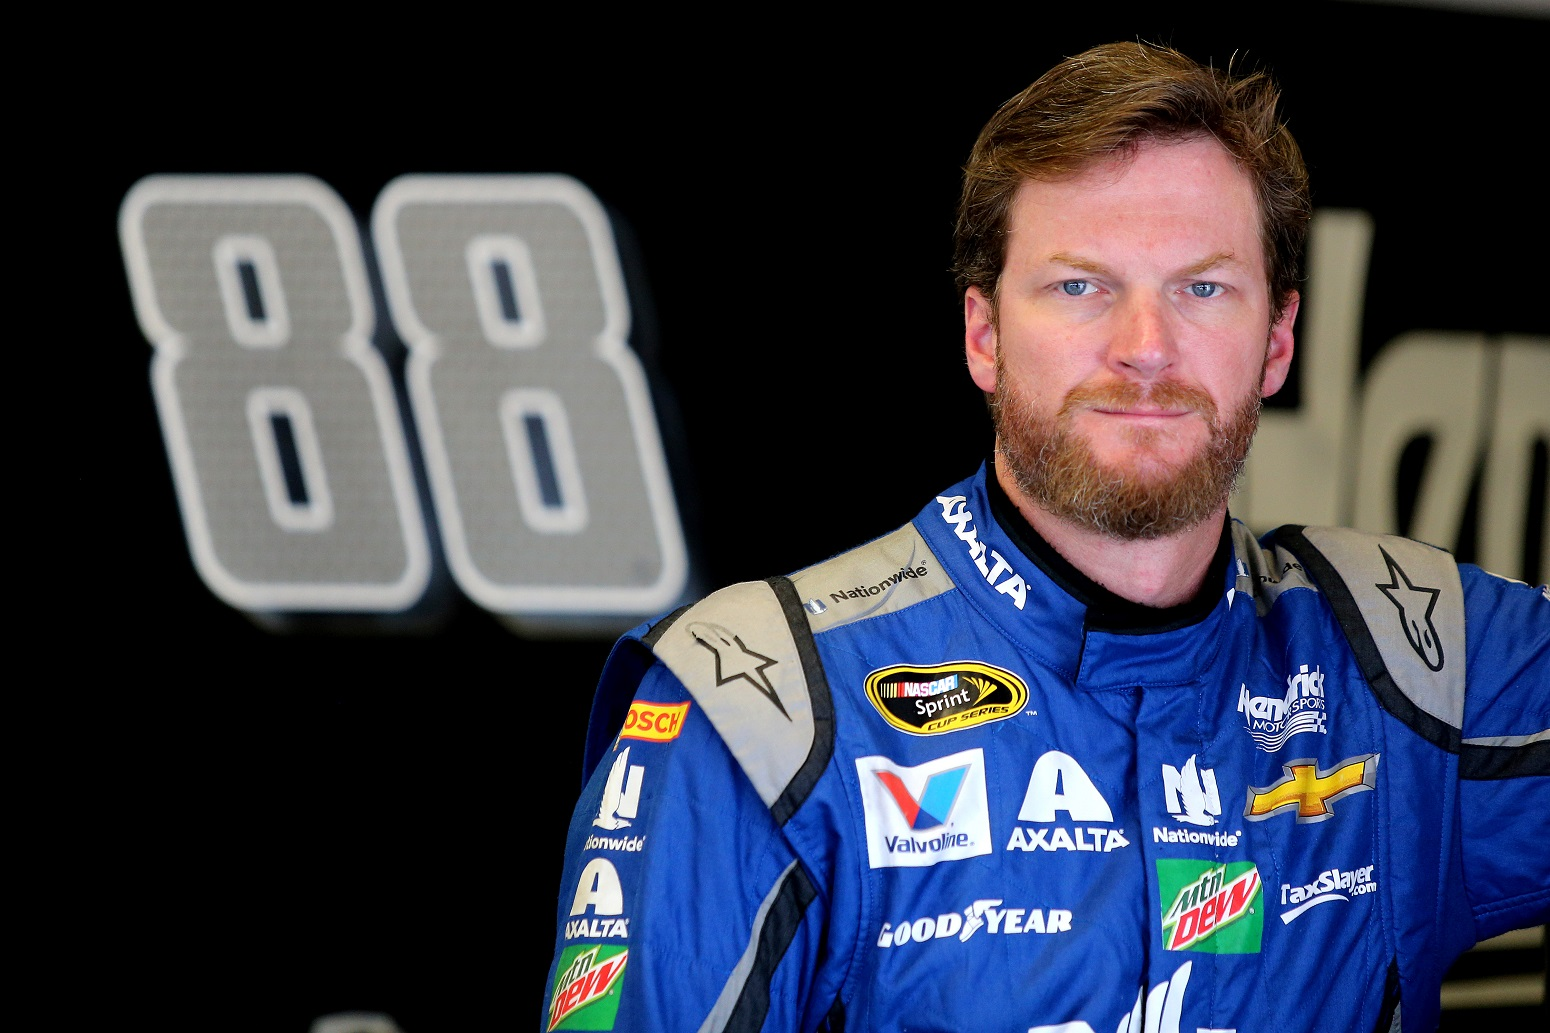 Dale Earnhardt Jr. hopes death improves safety of NASCAR